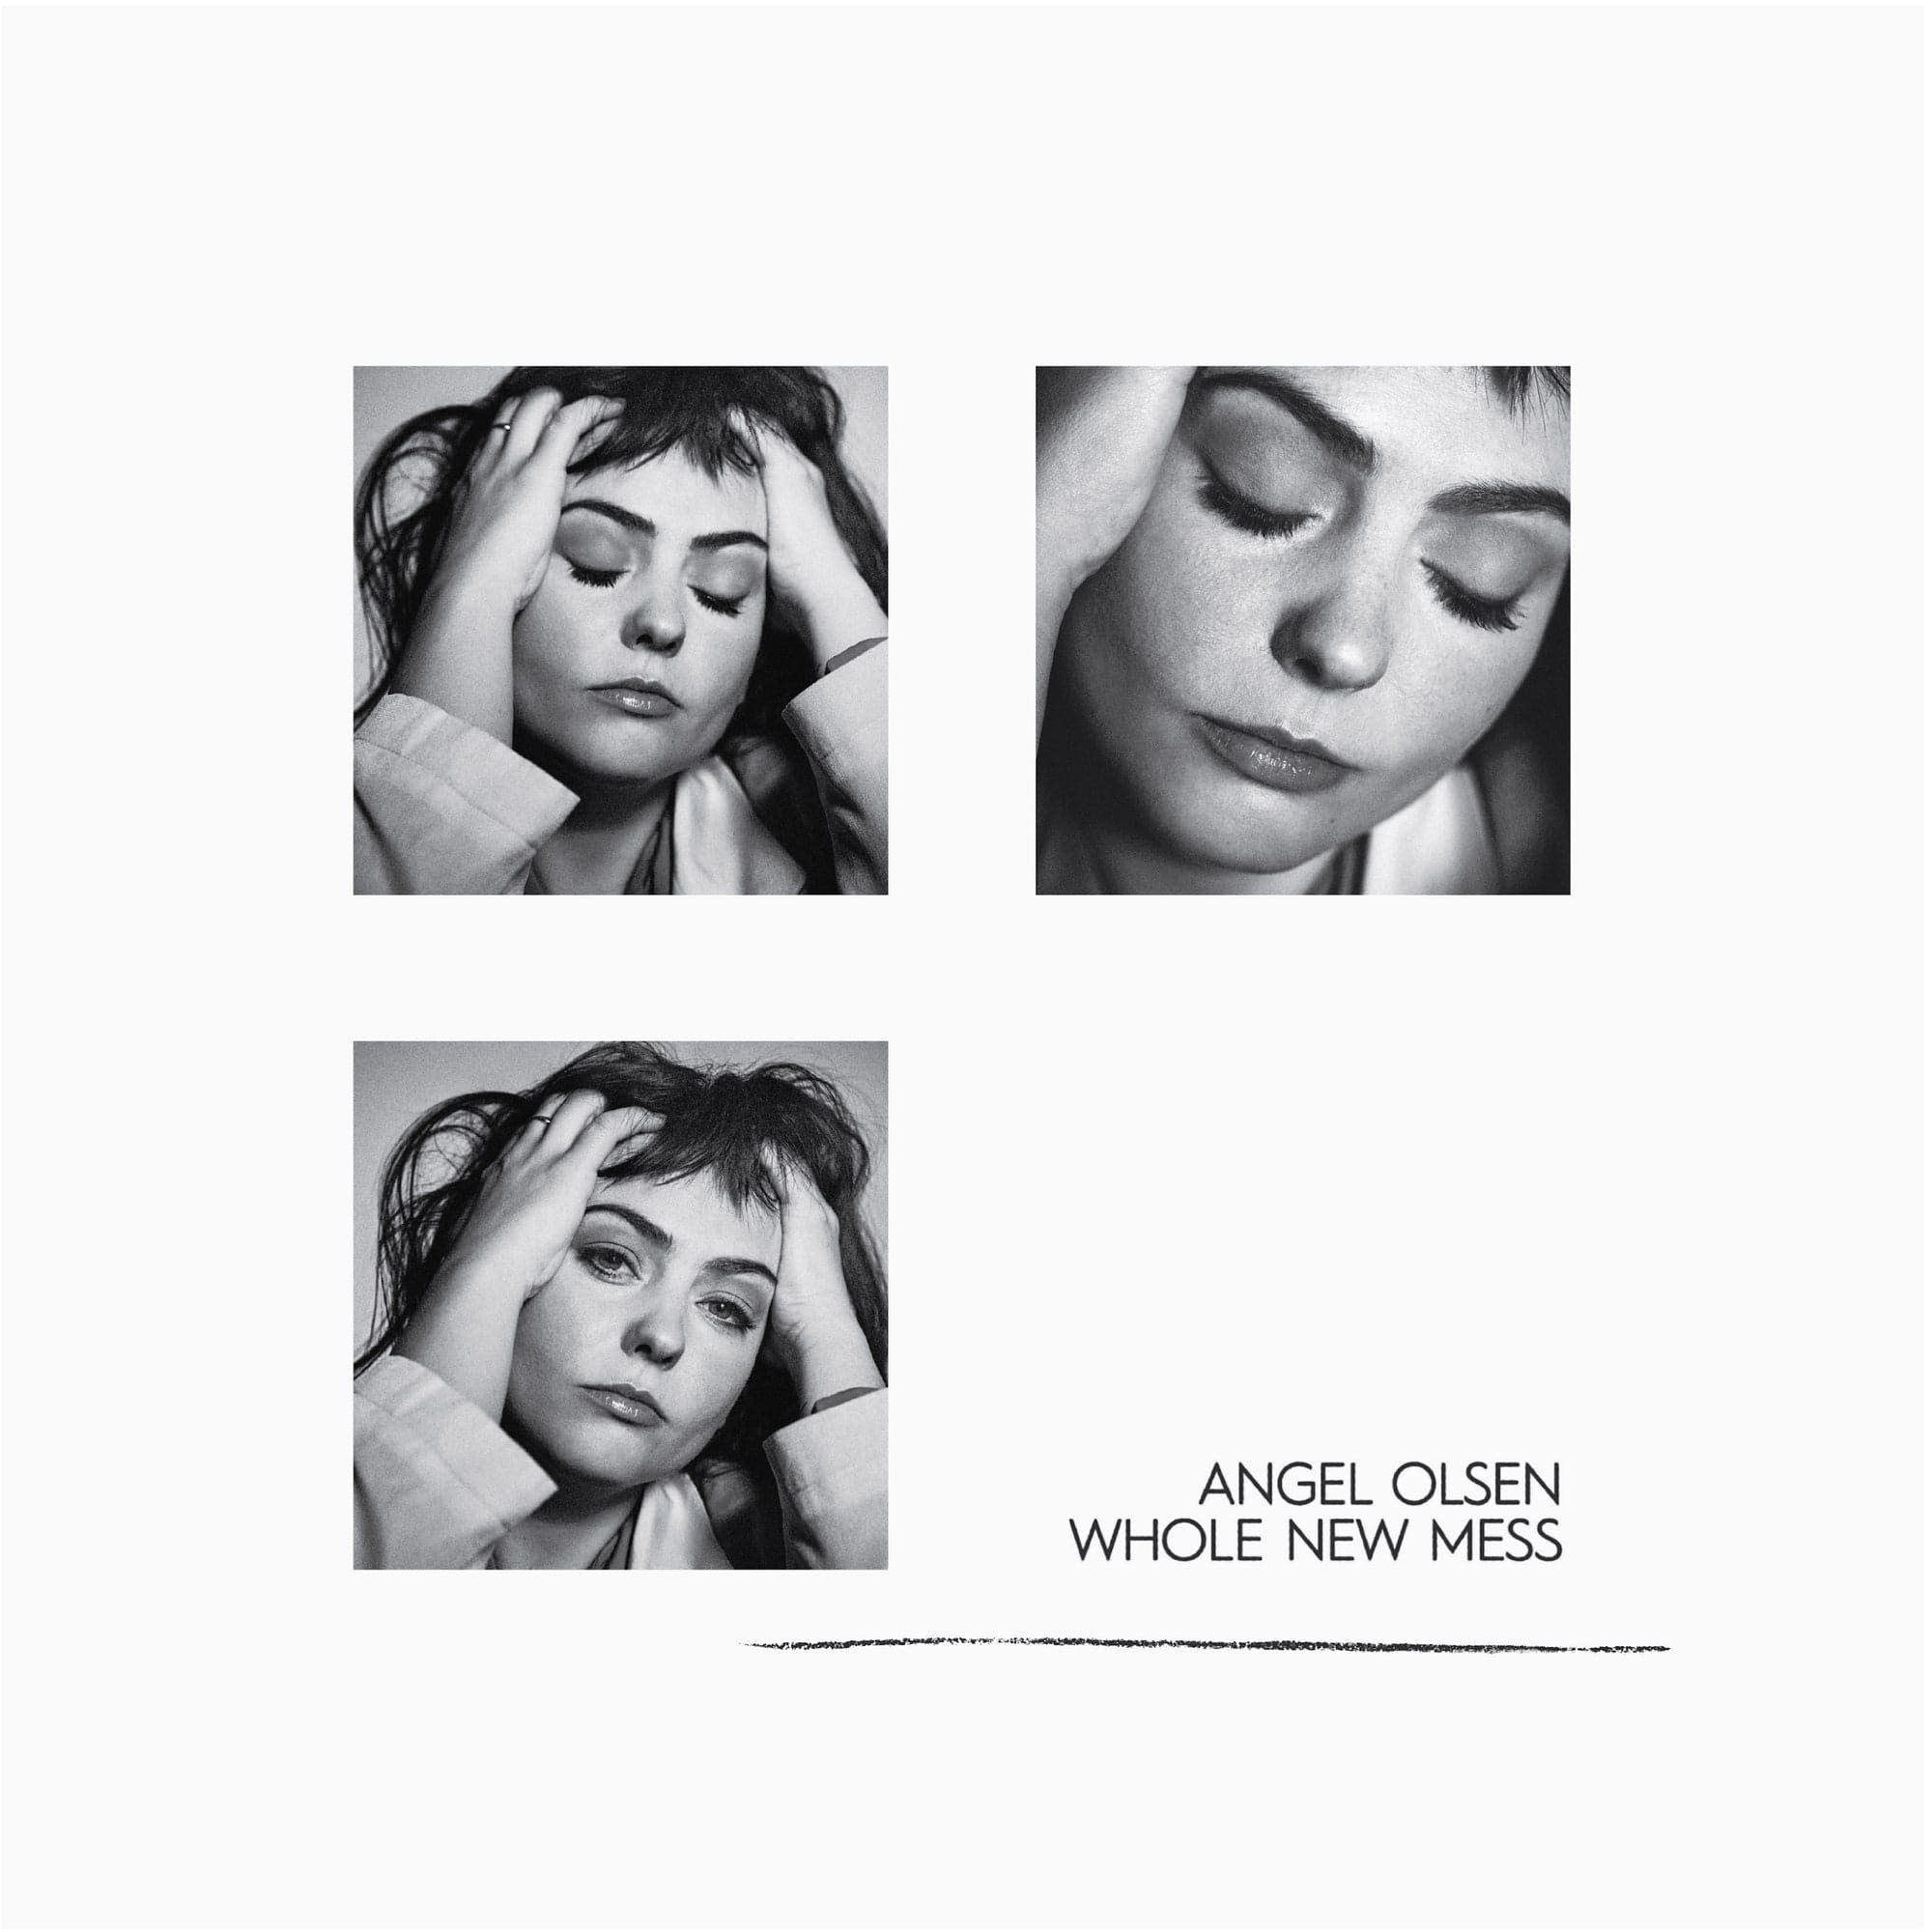 Angel Olsen, 'Whole New Mess'